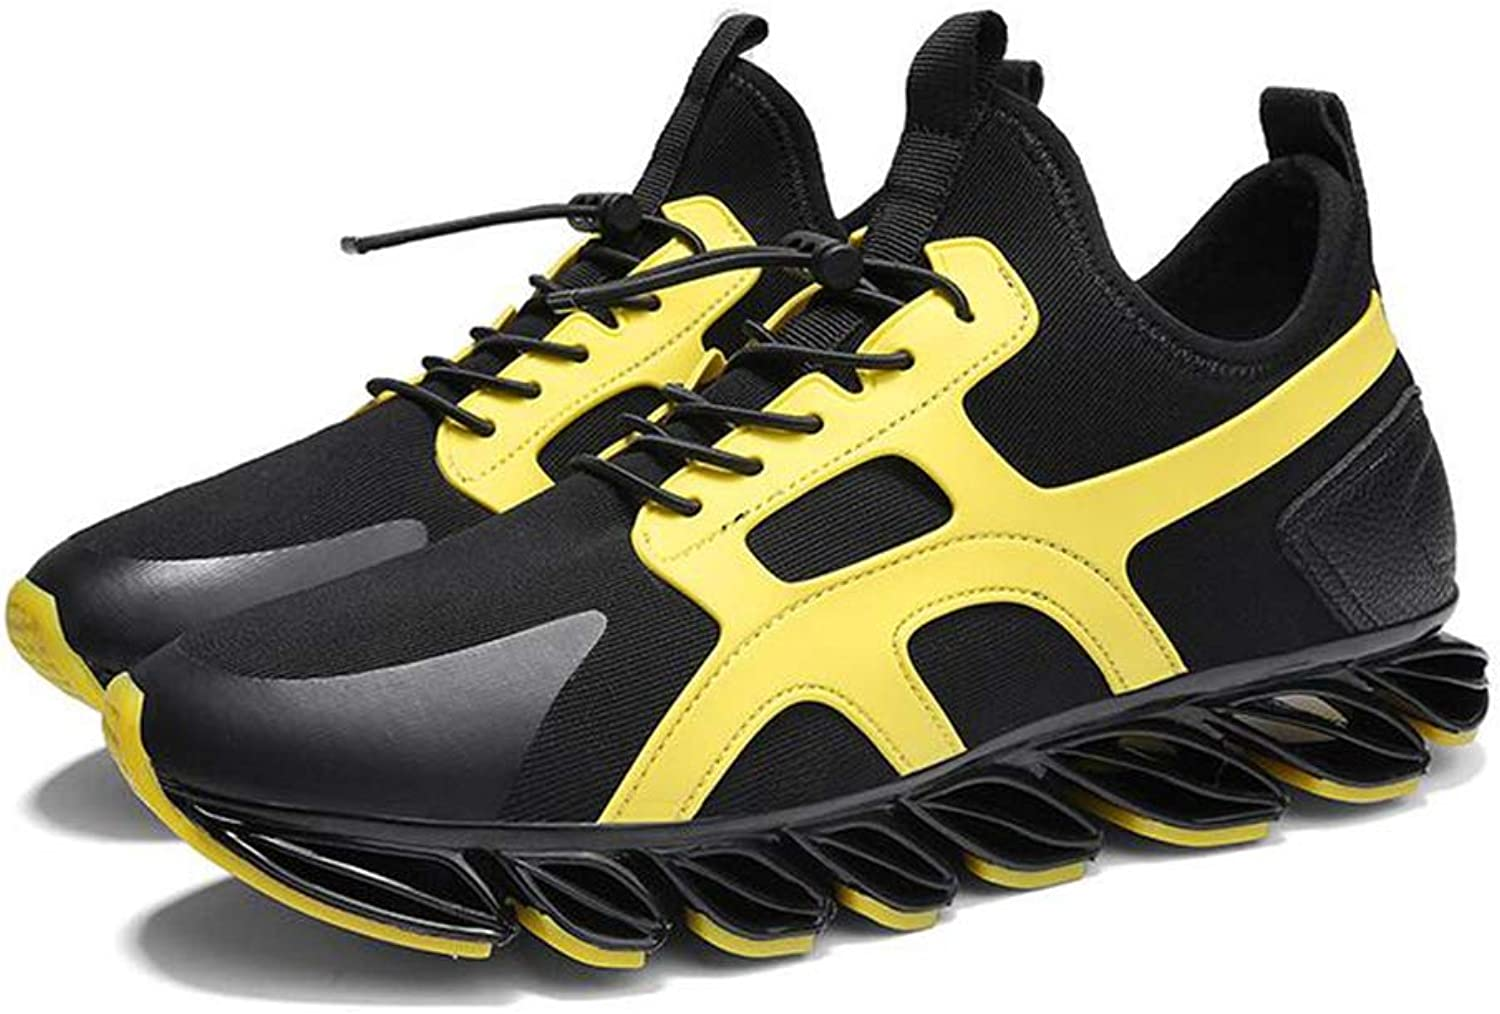 Y-H Men's Running shoes, Spring Fall Slip-Ons Training shoes,Outdoor Hiking shoes, Trekking Travel shoes (color   Yellow, Size   42)